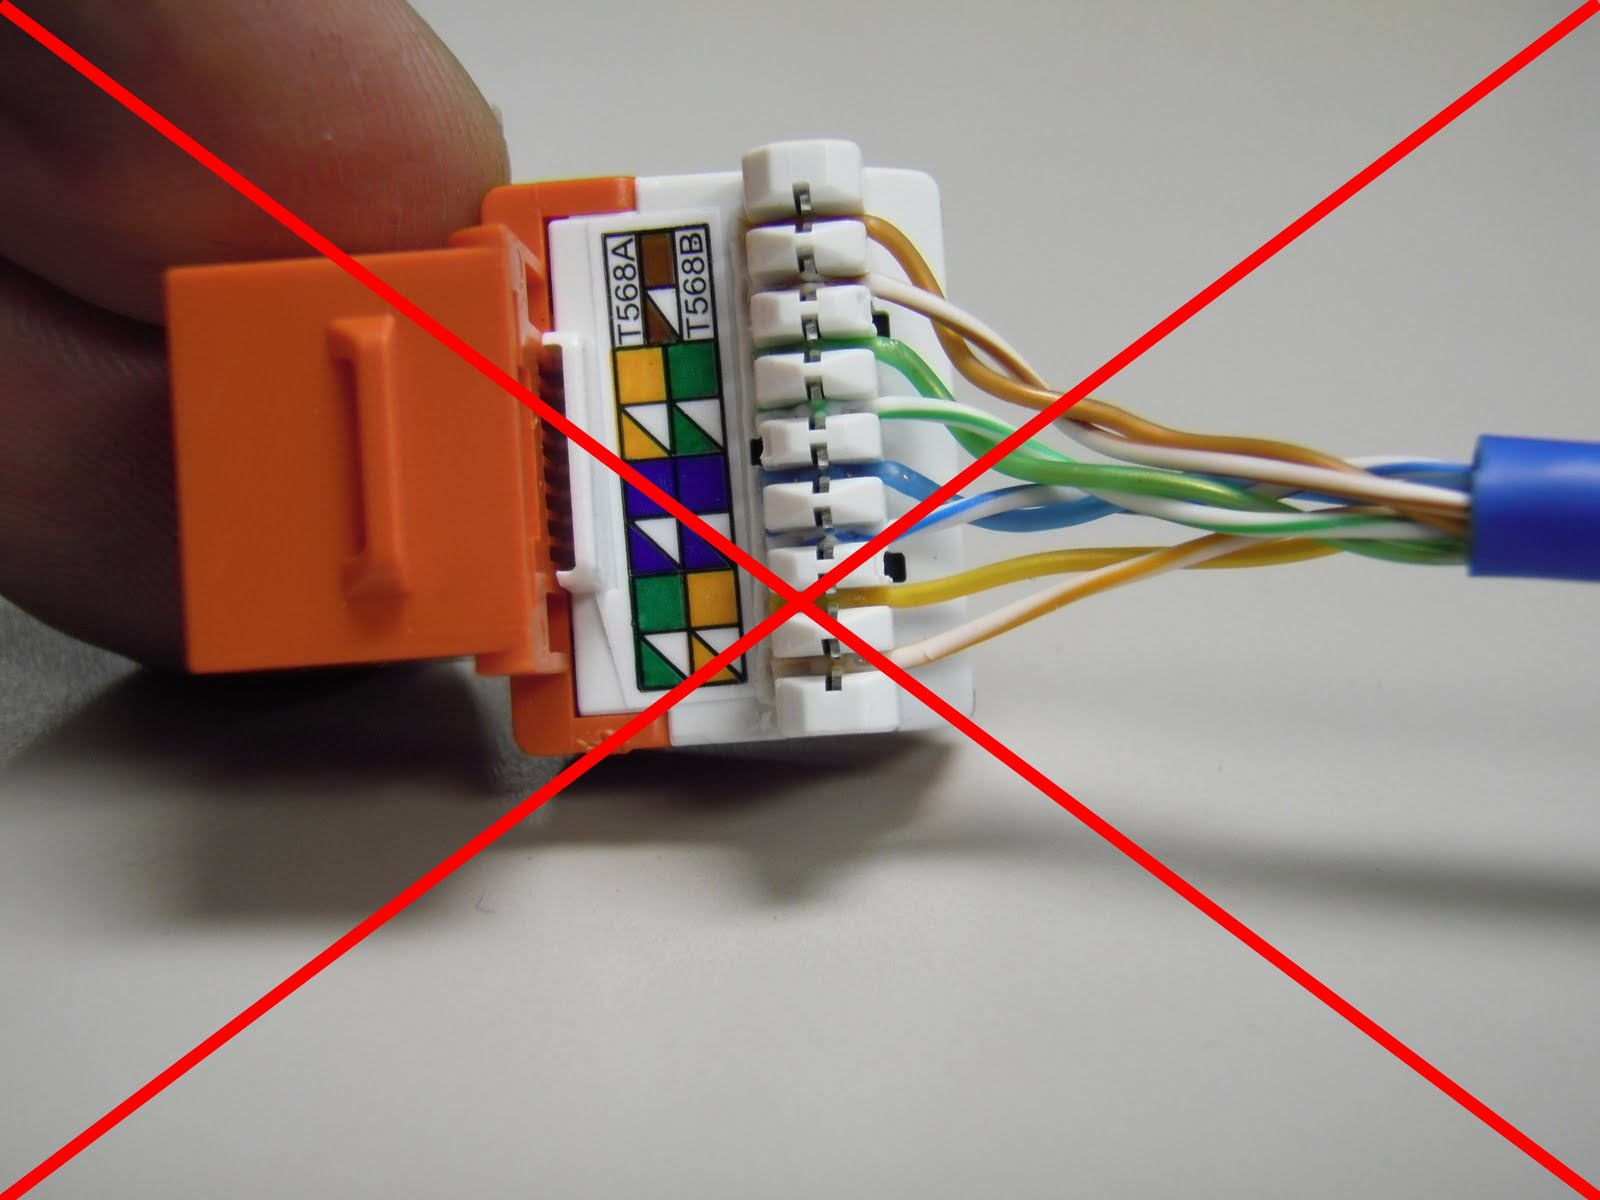 CAT5E+ER+JACK+PUNCHED+WRONG+RED+X the trench how to punch down cat5e cat6 keystone jacks cat 5 wiring diagram wall jack at crackthecode.co